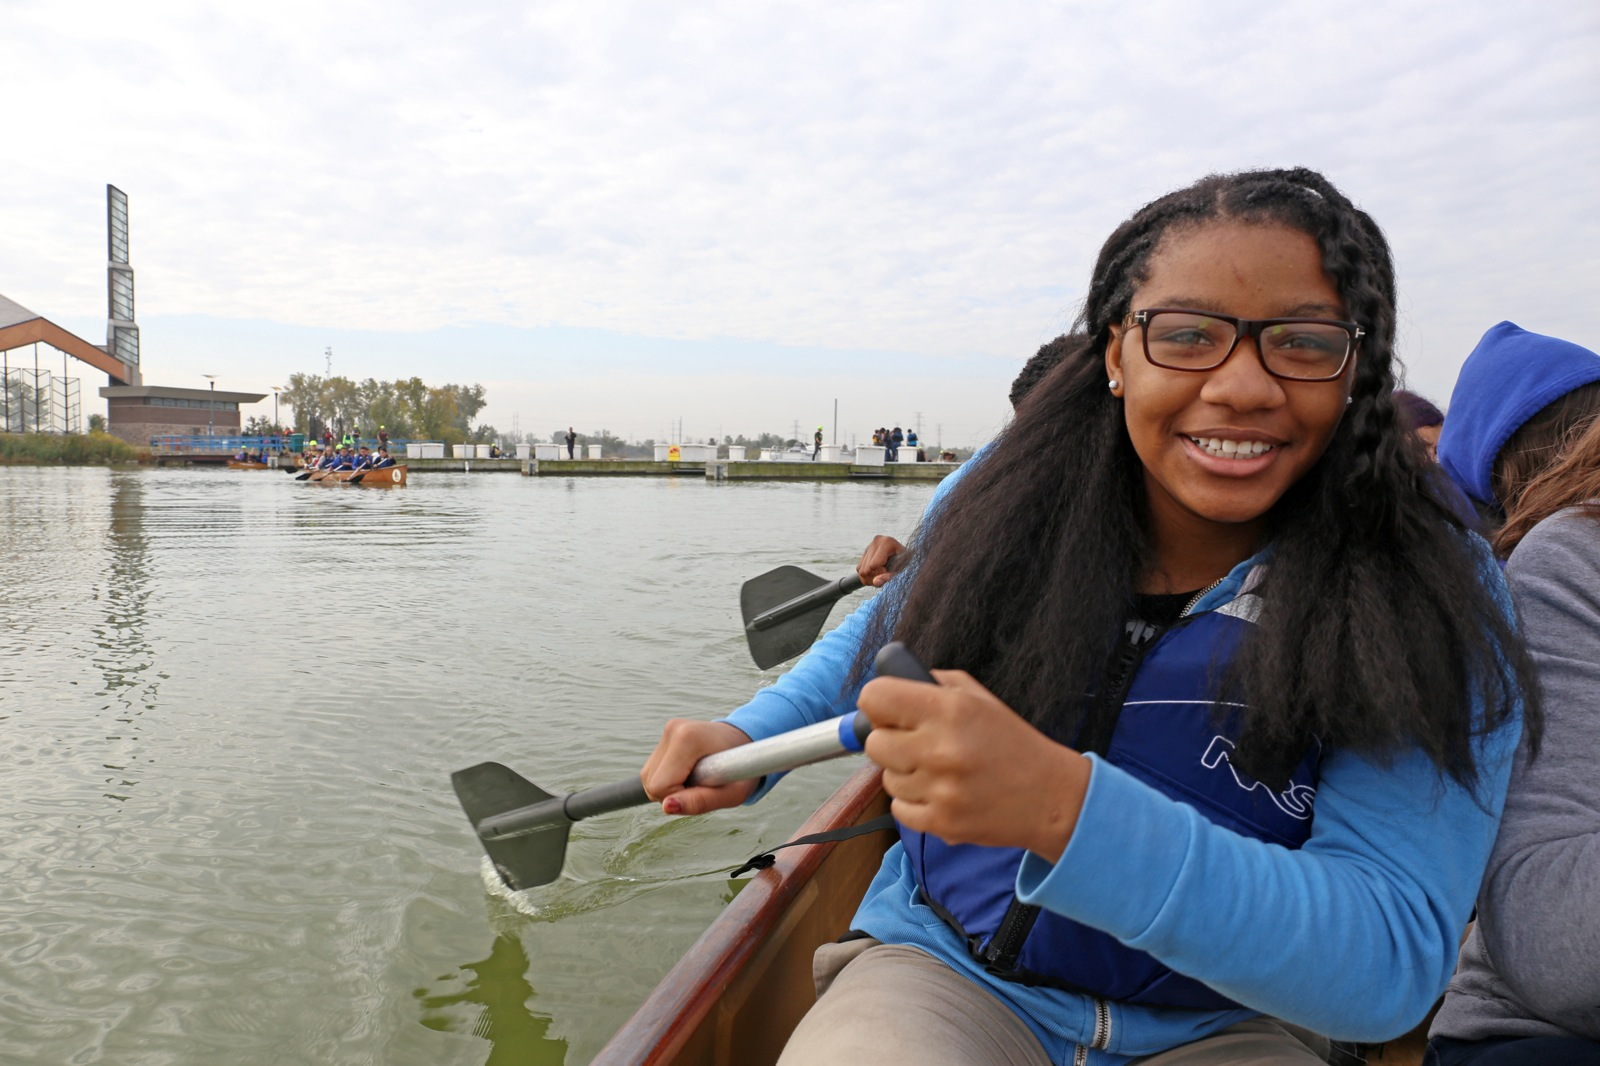 a girl smiles as she helps paddle the canoe